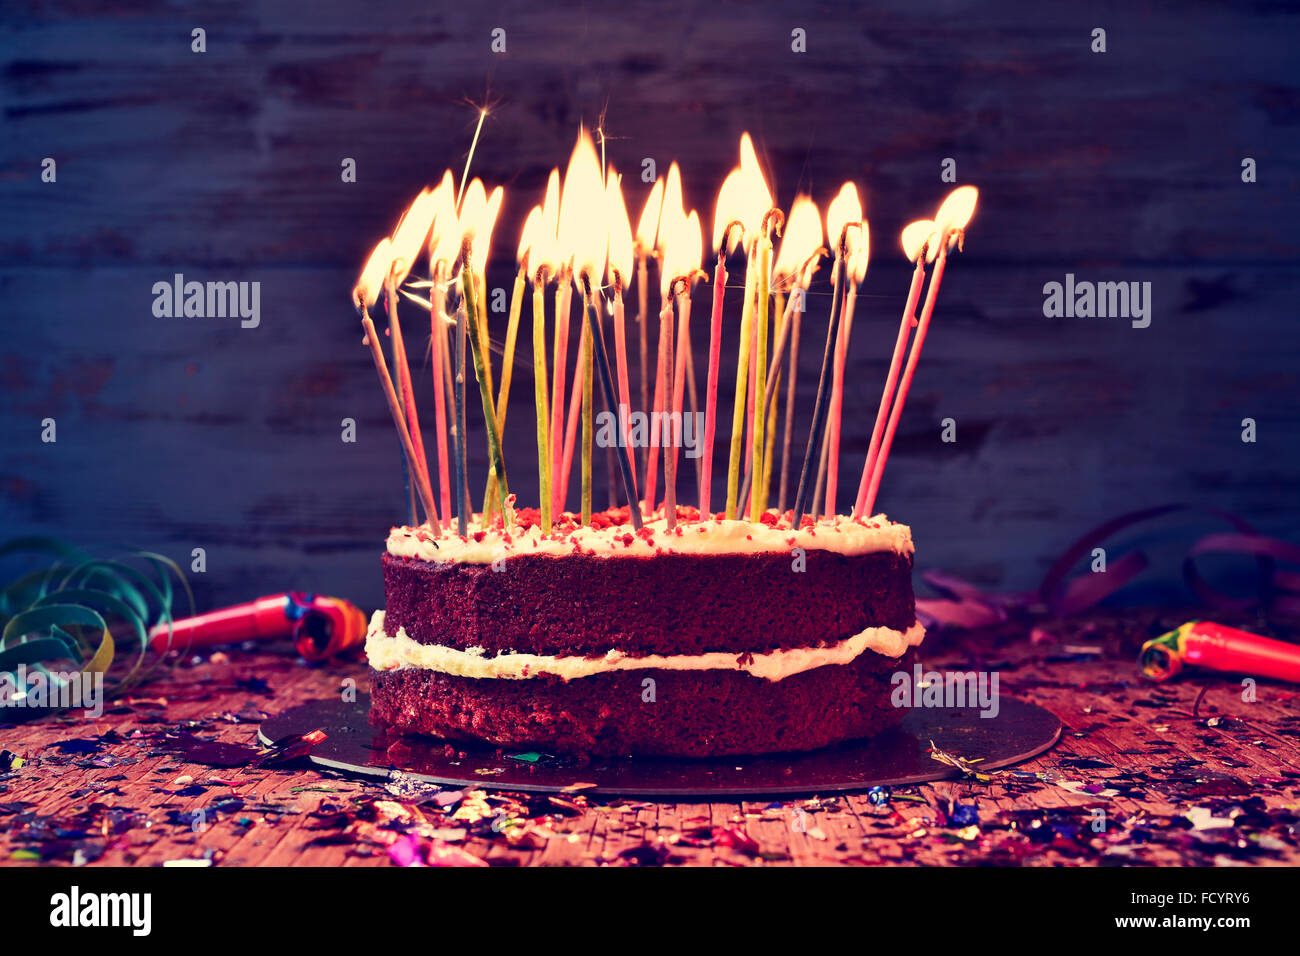 a cake topped with some lit candles before blowing out the cake, on a rustic wooden table full of confetti, party - Stock Image